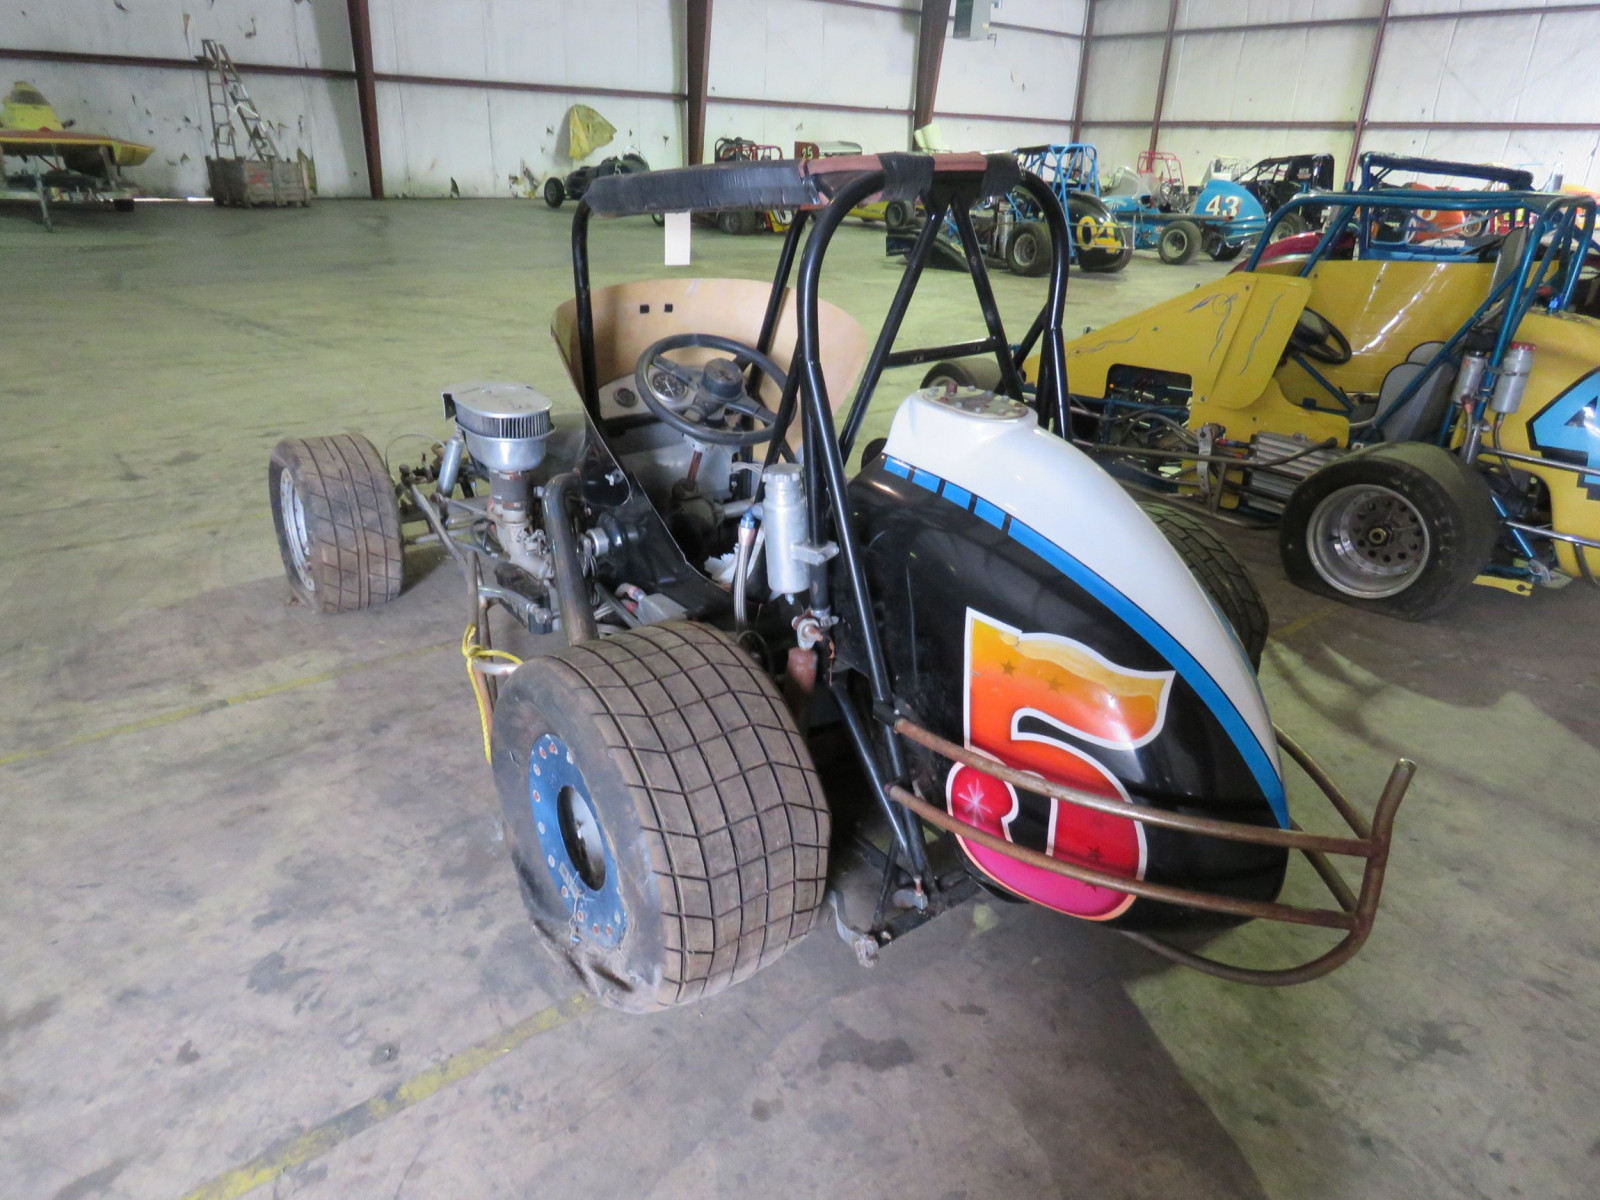 Vintage Edmunds Midget Race Car - Image 6